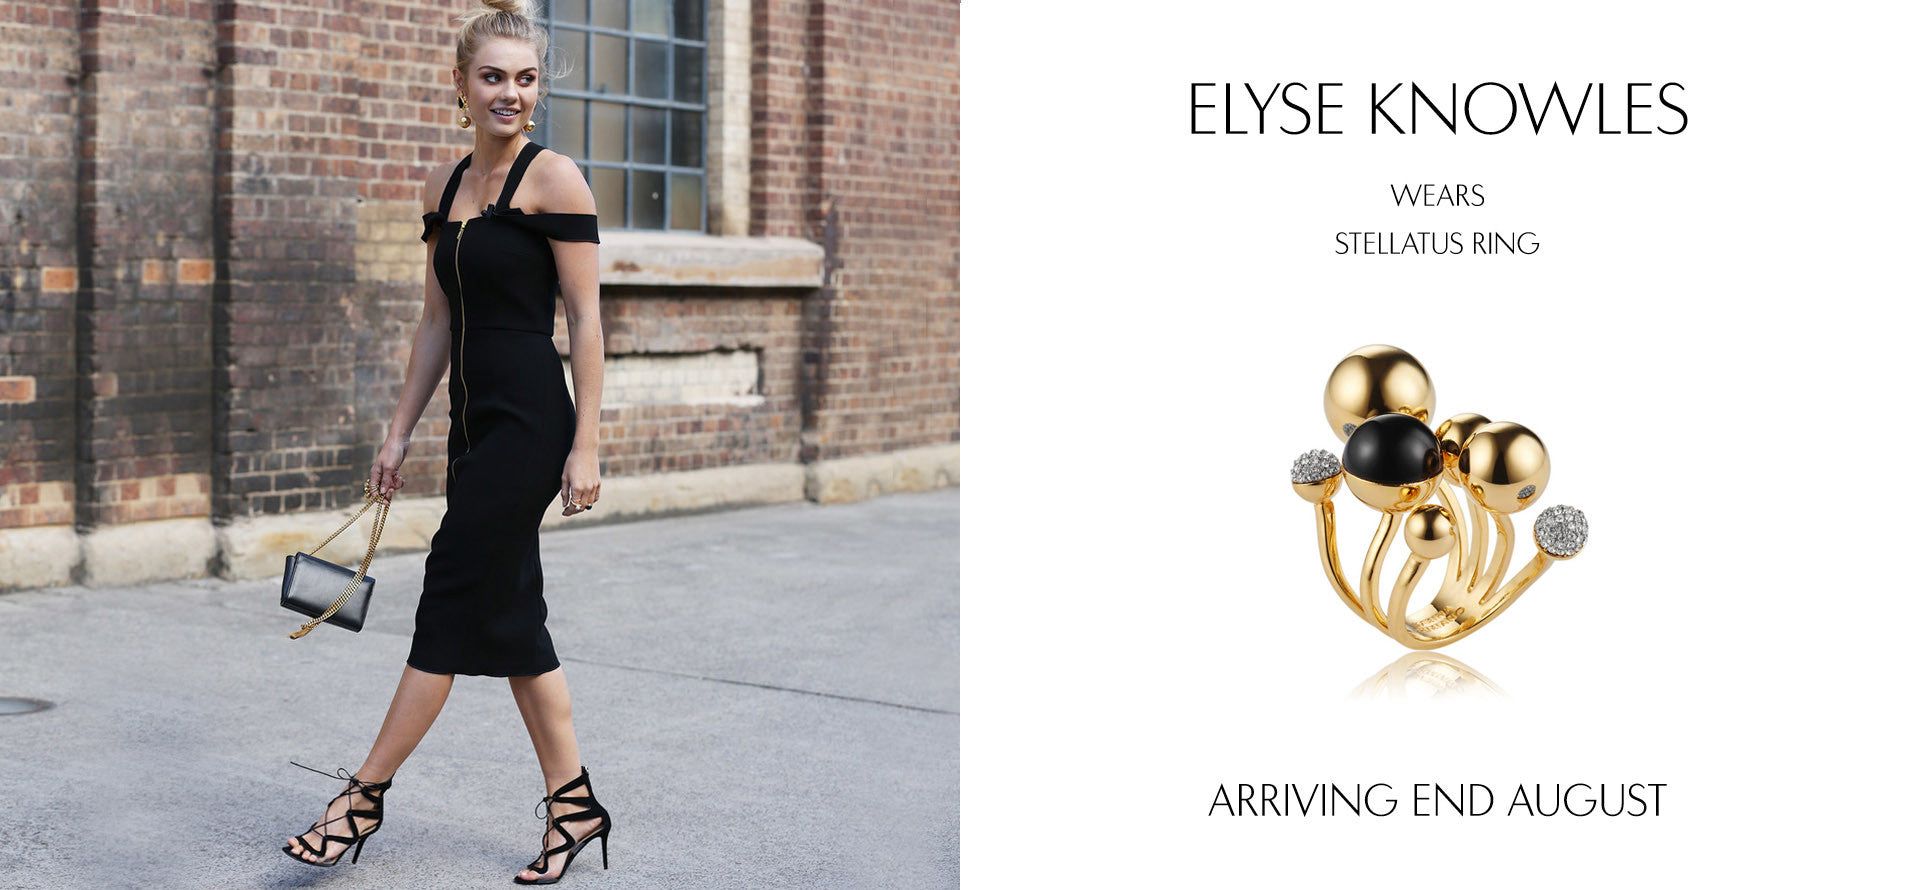 Model Elyse Knowles at MBFWA 2016 wears Sarina Suriano Stellatus ring in 18K gold plating from the Sphera collection